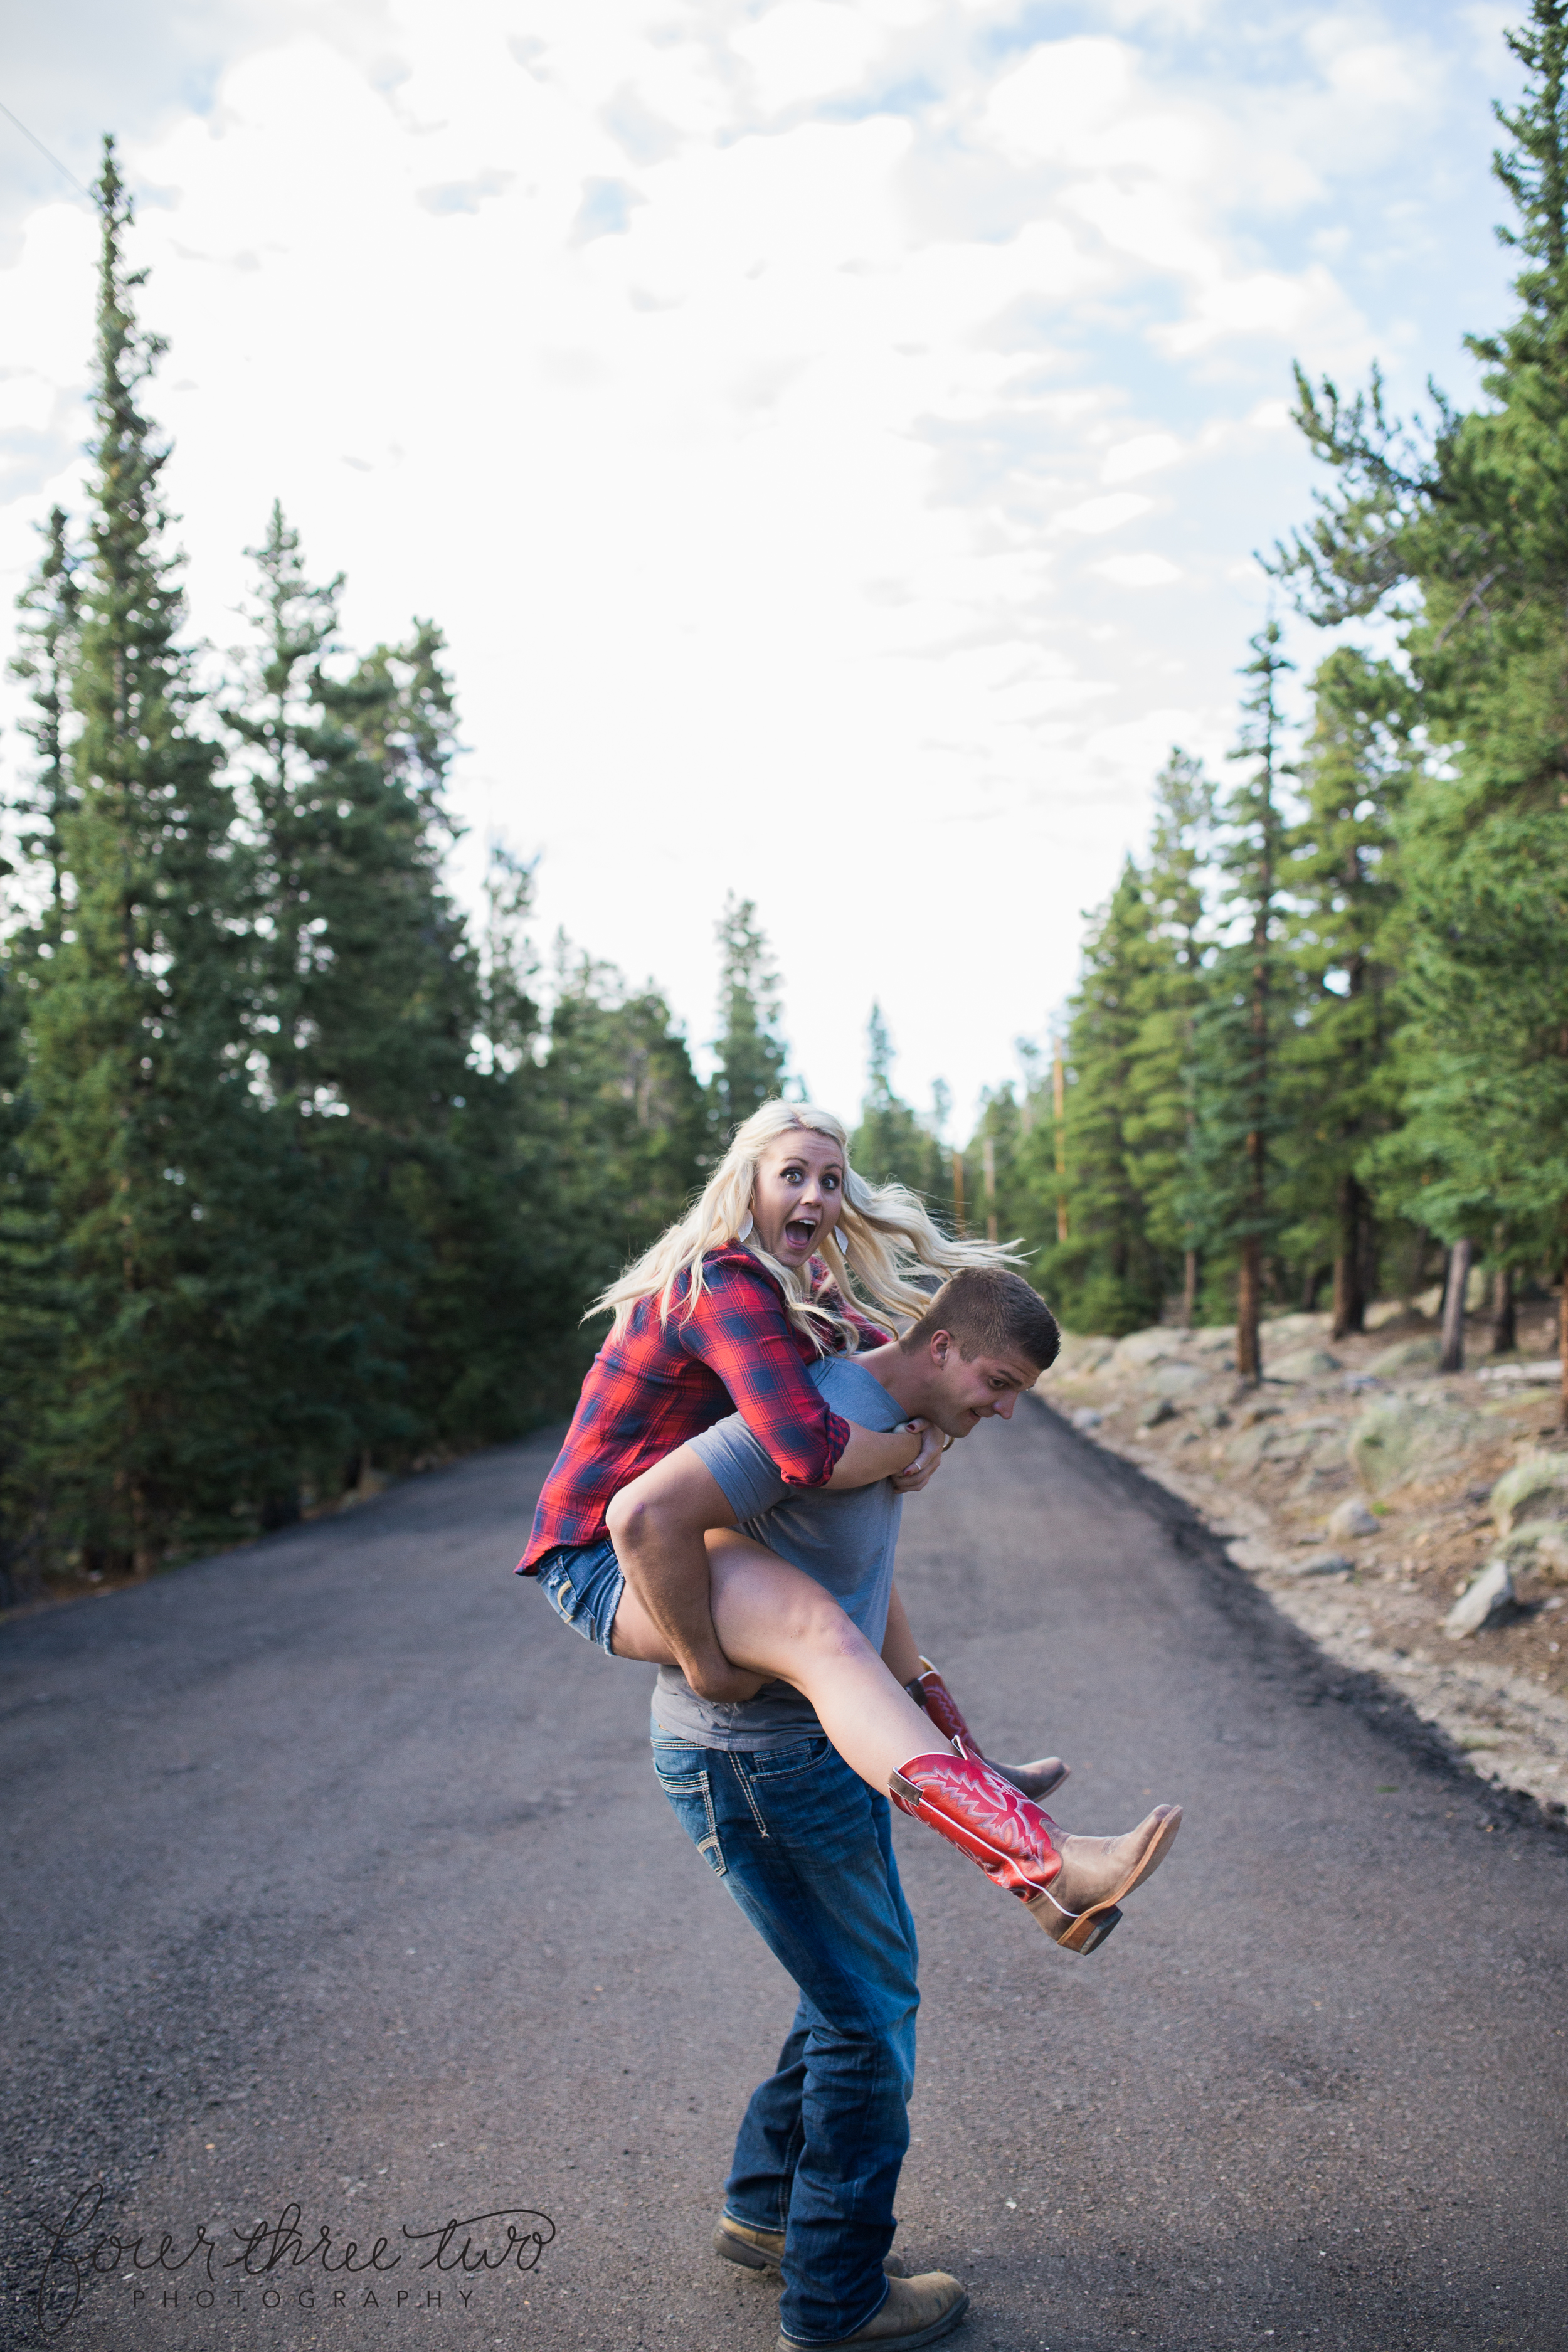 Colorado Mountain Wedding Photographer - Fun mountain engagement shoot